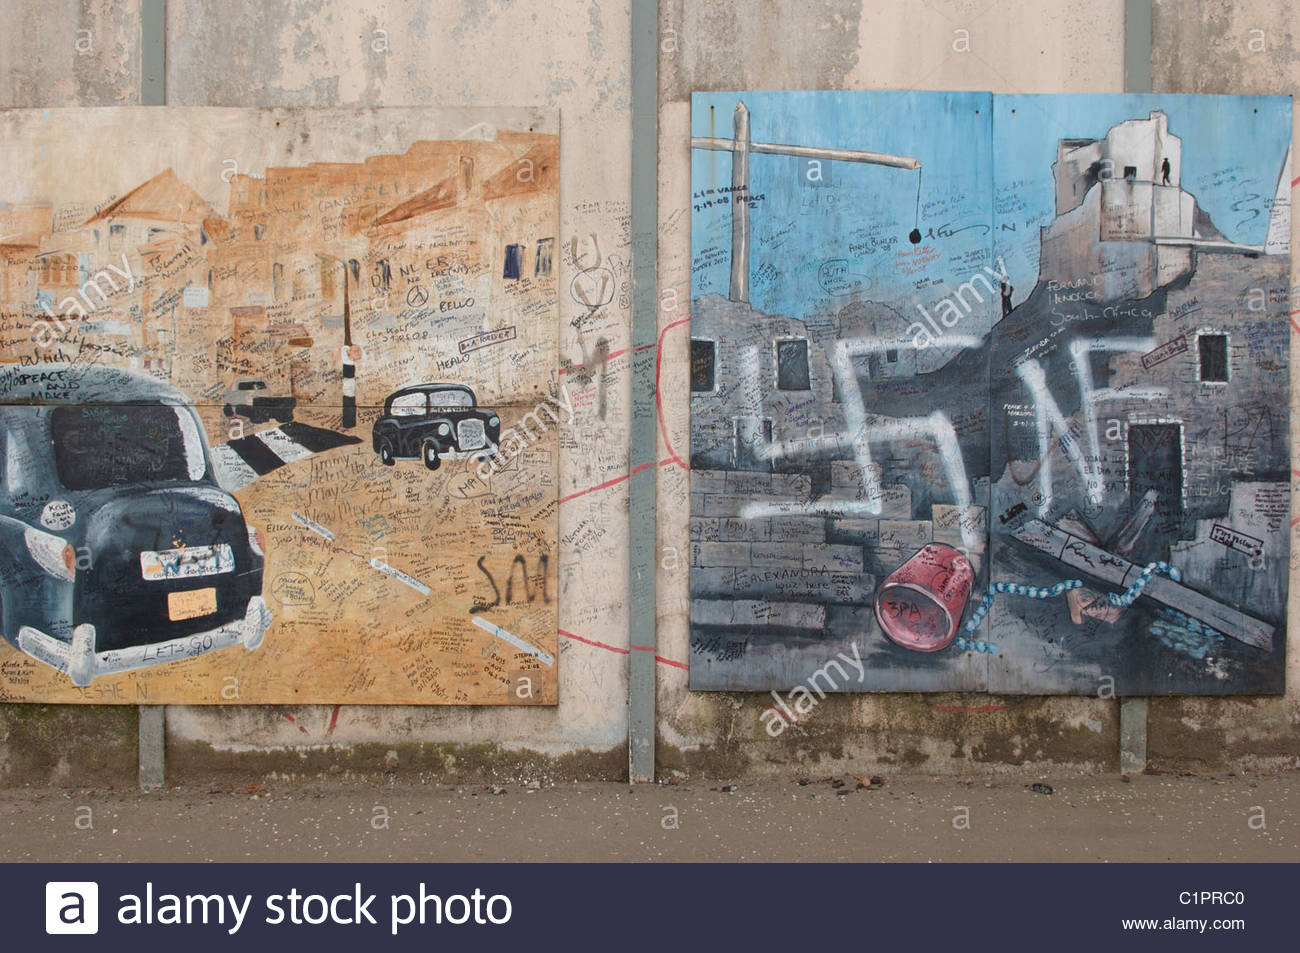 Northern Ireland, Belfast, political murals on wall - Stock Image